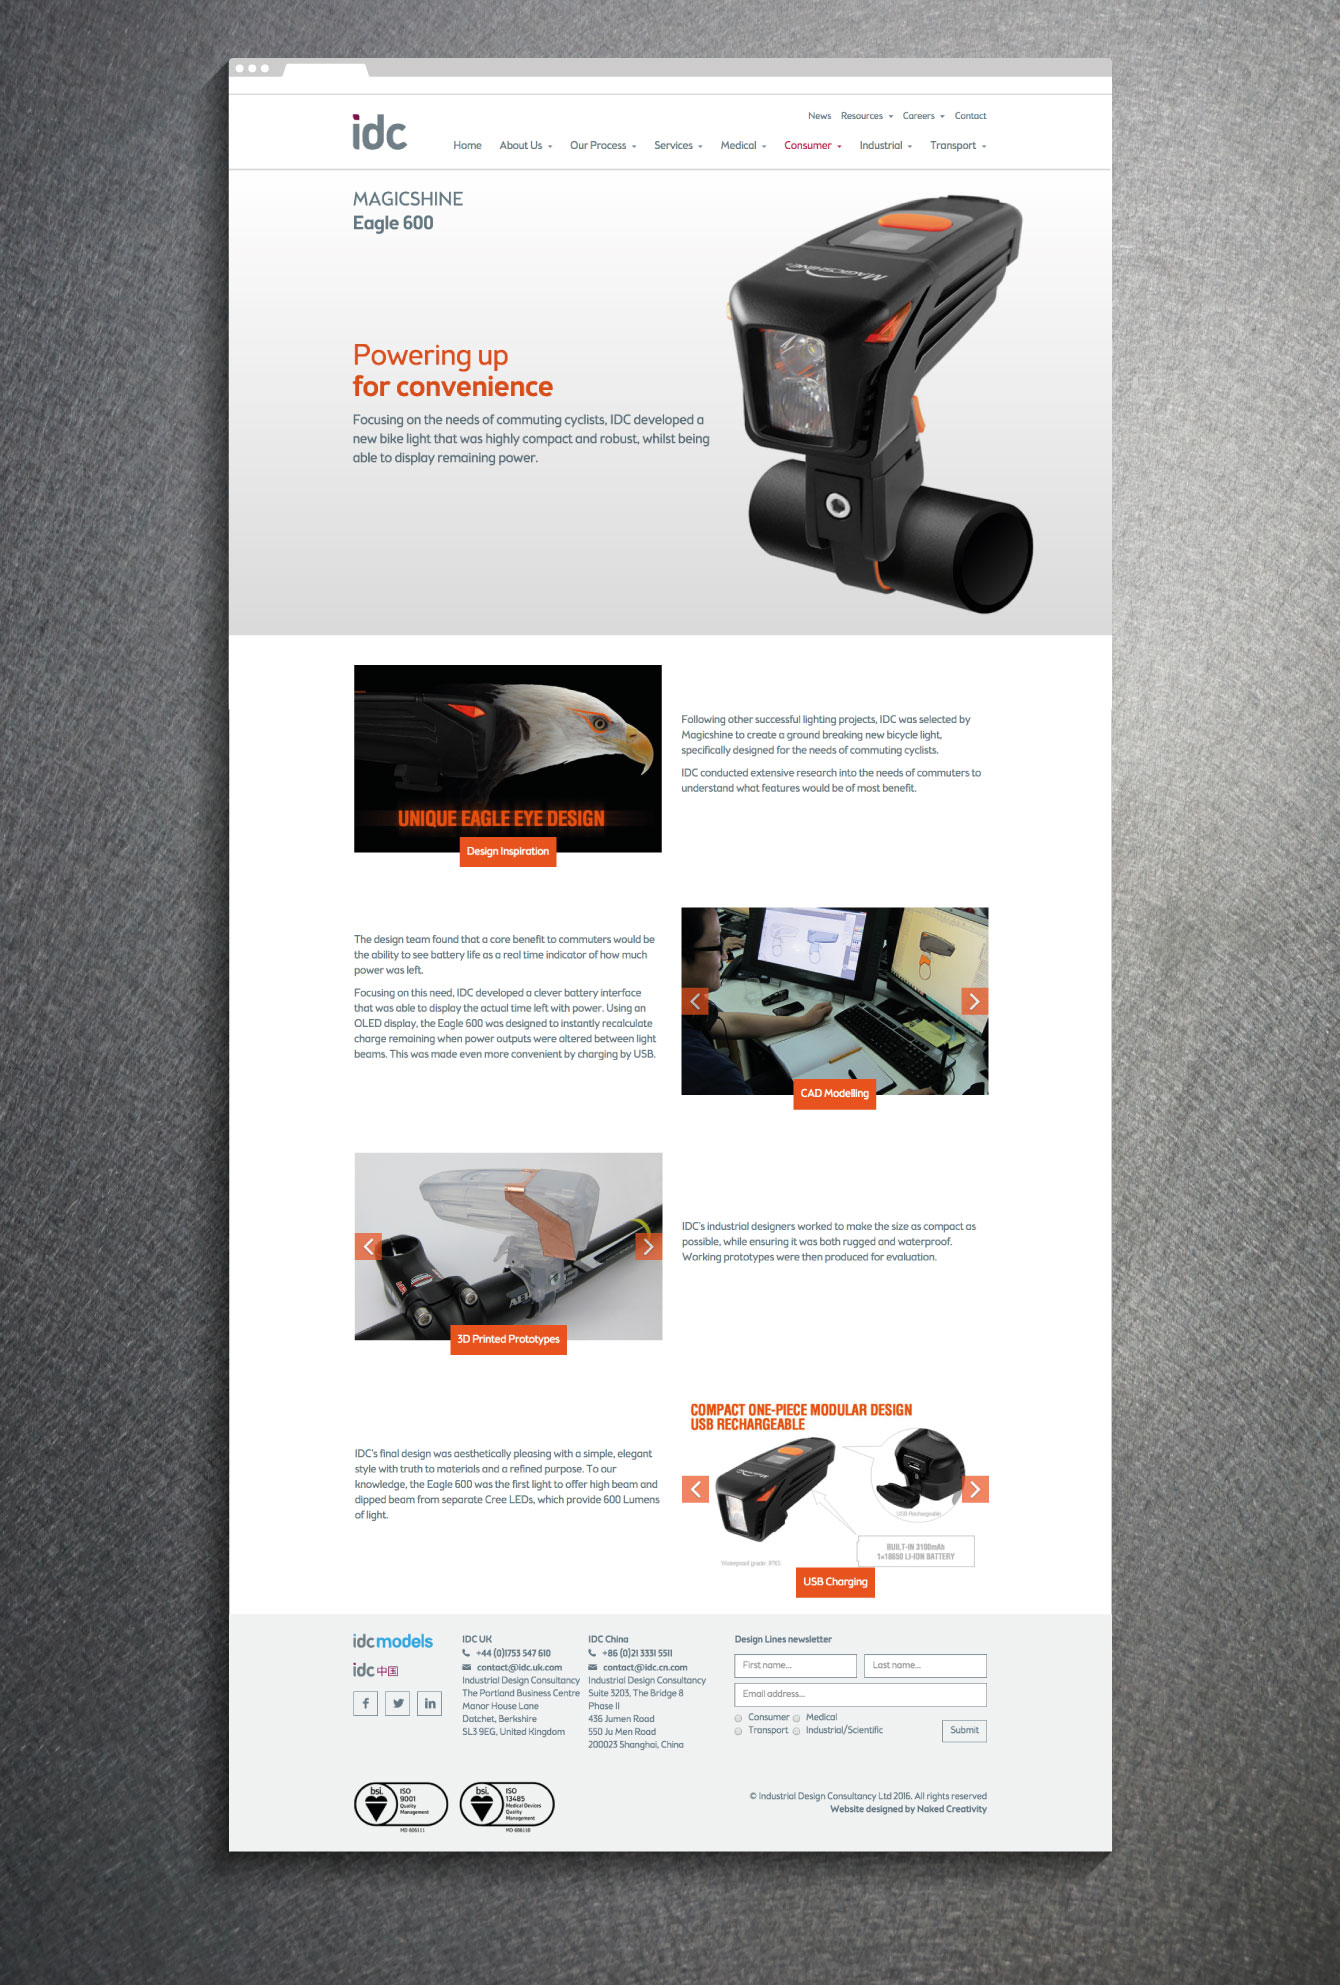 A product page on the IDC website - desktop